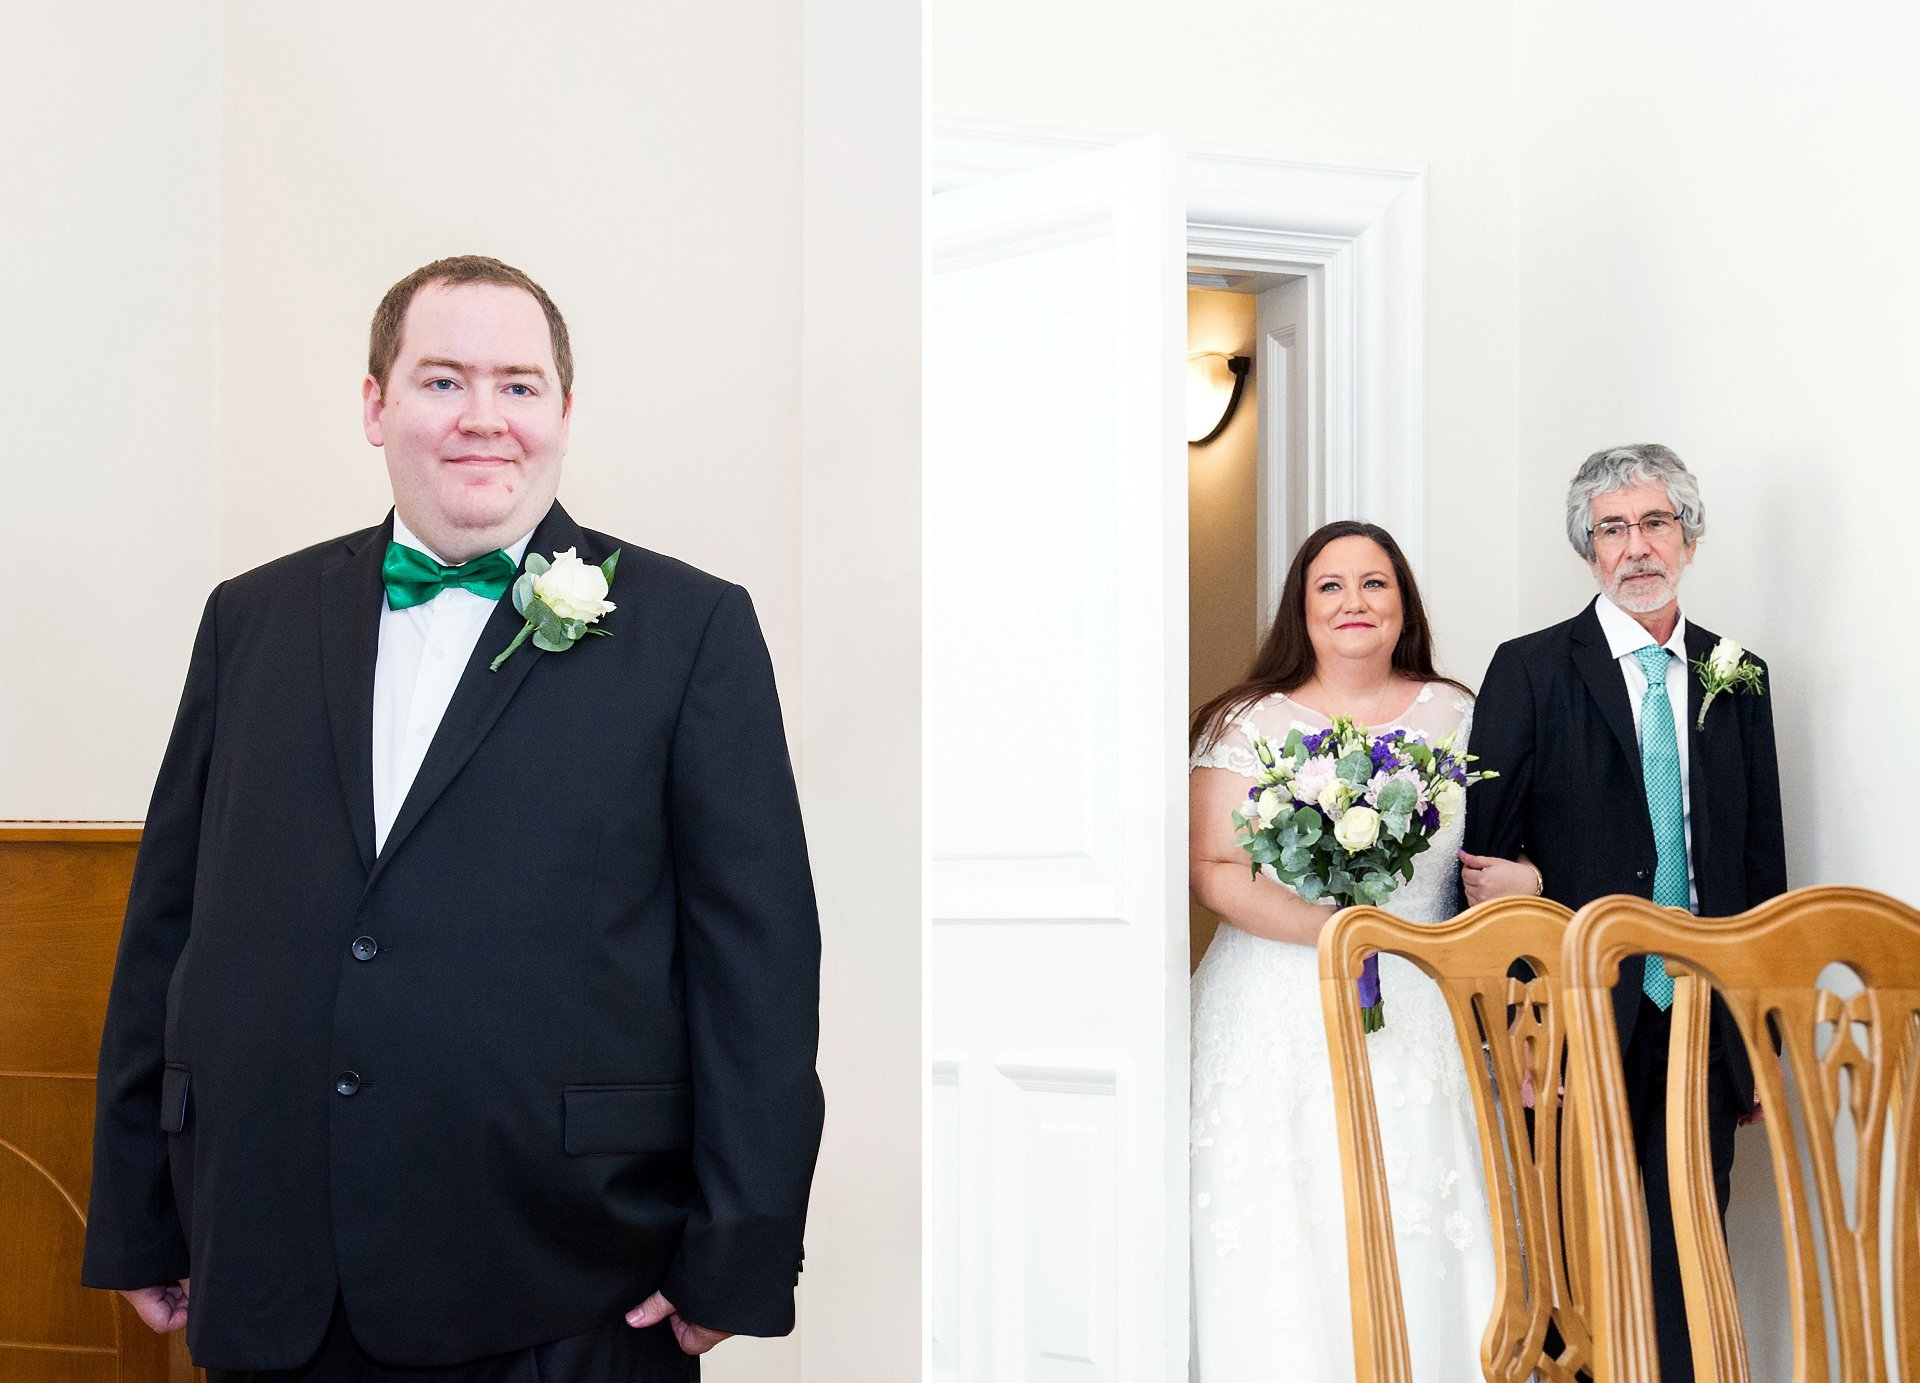 A groom in the Edwardian Room of Greenwich Register Office turns to see his bride entering with her father. Woolwich Town Hall wedding photography by Emma Duggan